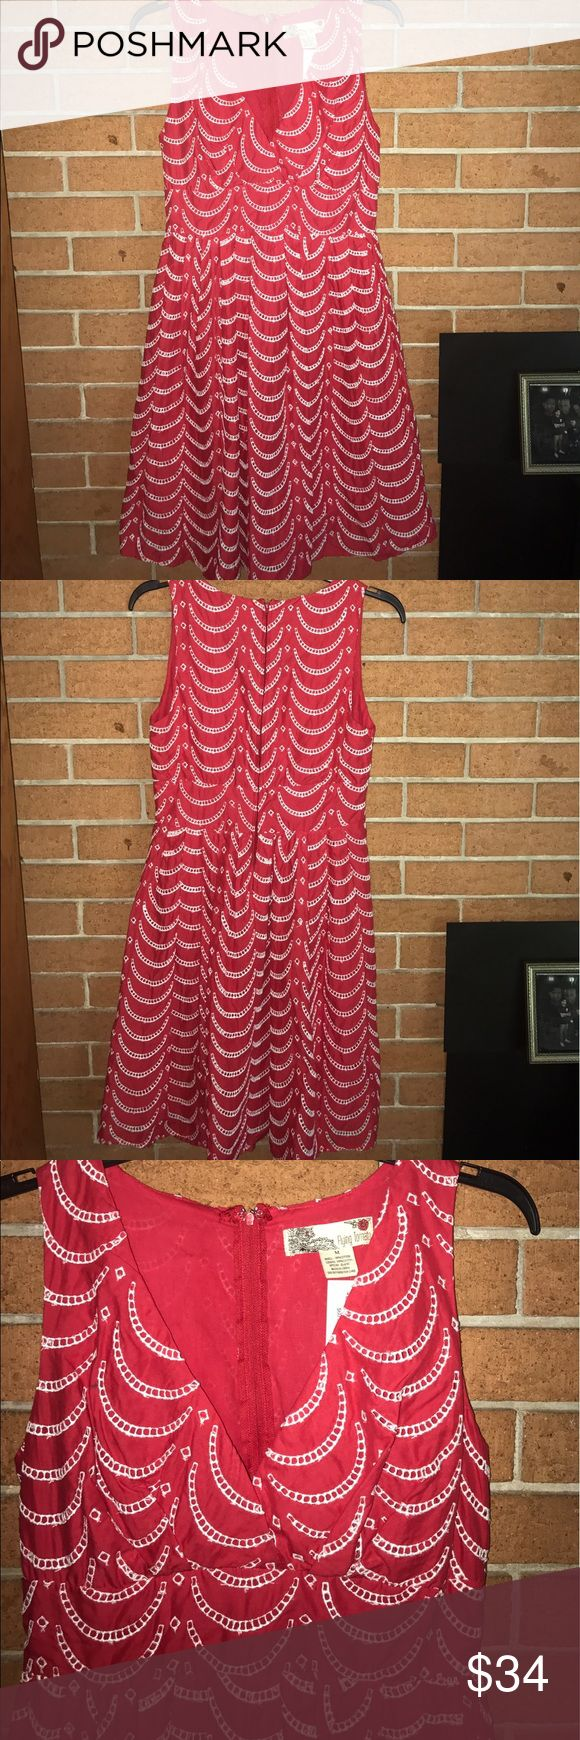 """🌹NWT FLYING TOMATO🌹SCALLOP EYELET DRESS🌹 Flying tomato scallop fit and flare dress banded waist for extra shape definition back hidden zipper. Eye and hook closure. Fully lined. 100% cotton colors red and white. Originally purchased from a boutique. Measured flat bust 17"""" waist 14 1/2""""hips free length 37 1/2"""" although it is new and has loose threads on different eyelets see last photo for example🌹NWT FLYING TOMATO🌹SCALLOP EYELET DRESS🌹 Flying Tomato Dresses Midi"""